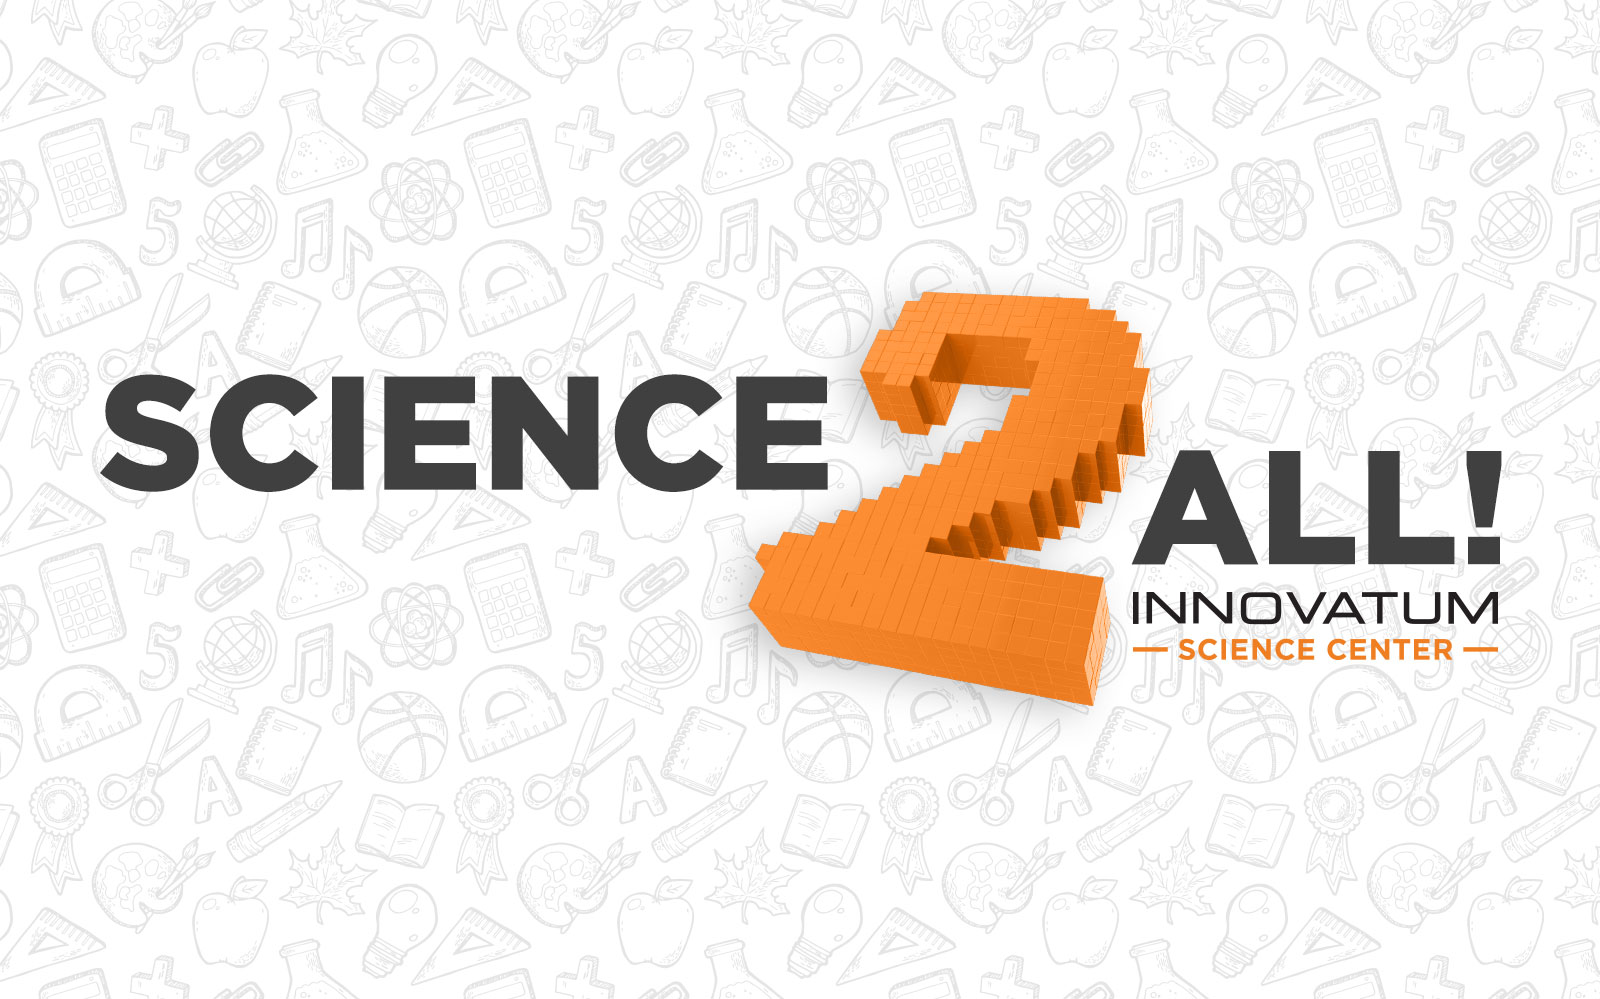 science2all-1600x999